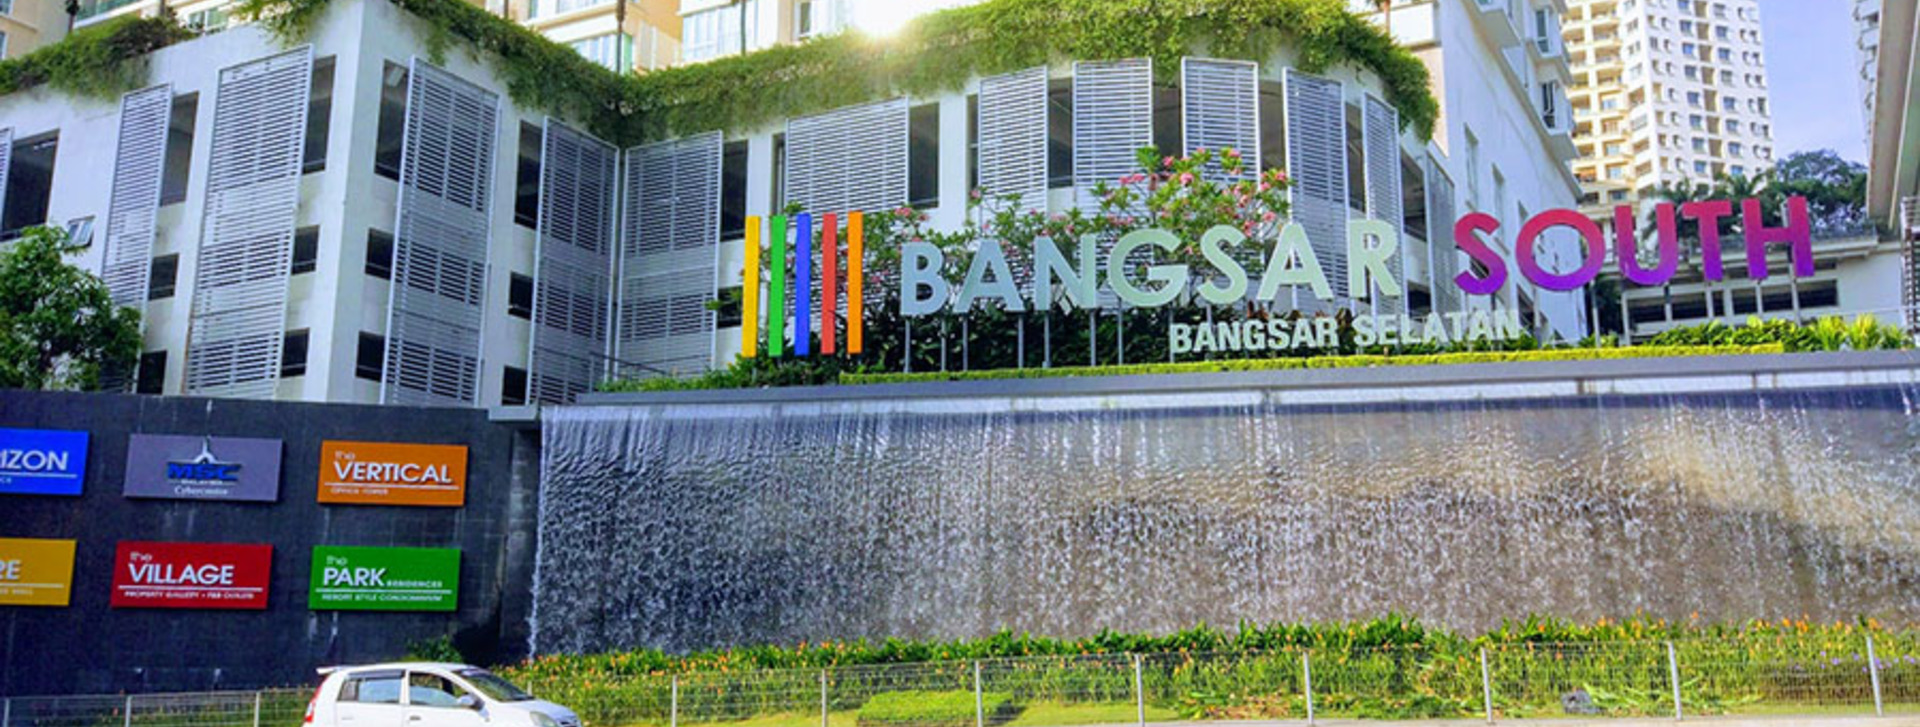 Bangsar South or Kampung Kerinchi: a lesson in branding